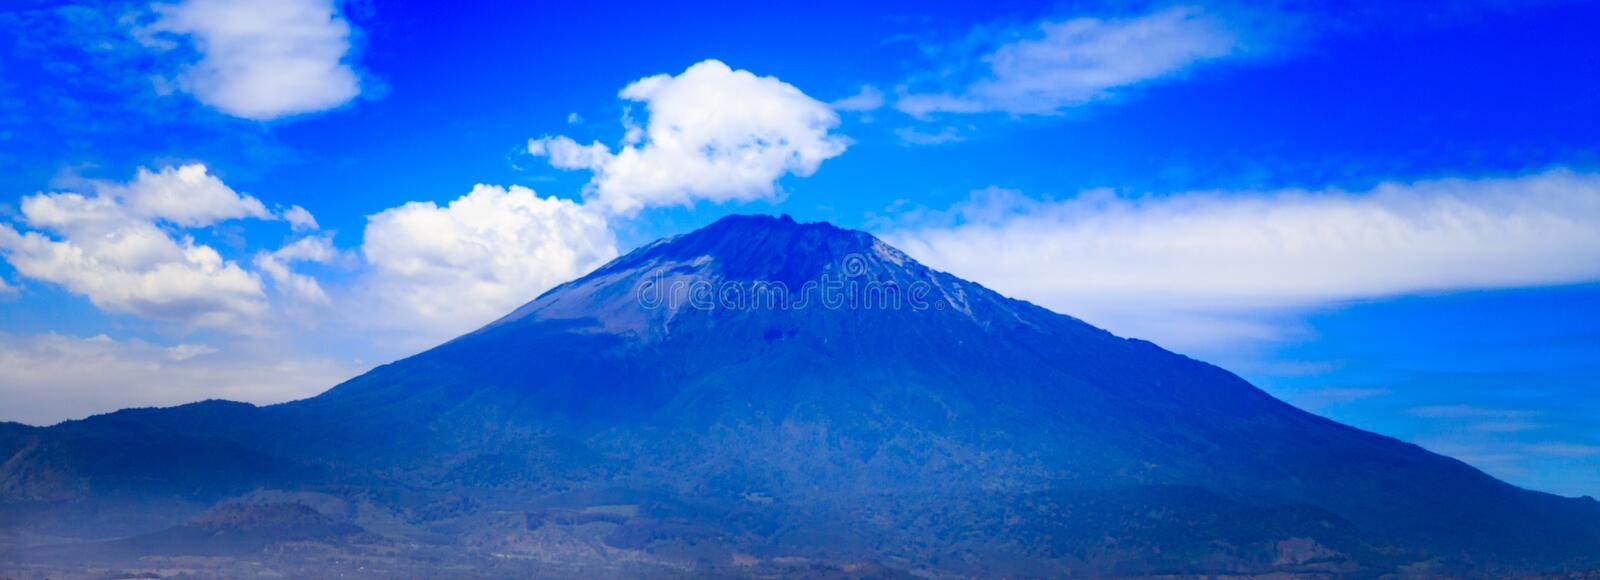 Mount Meru in Tanzania. Mount Meru is an active stratovolcano located 70 kilometres (43 mi) west of Mount Kilimanjaro in the nation of Tanzania stock image